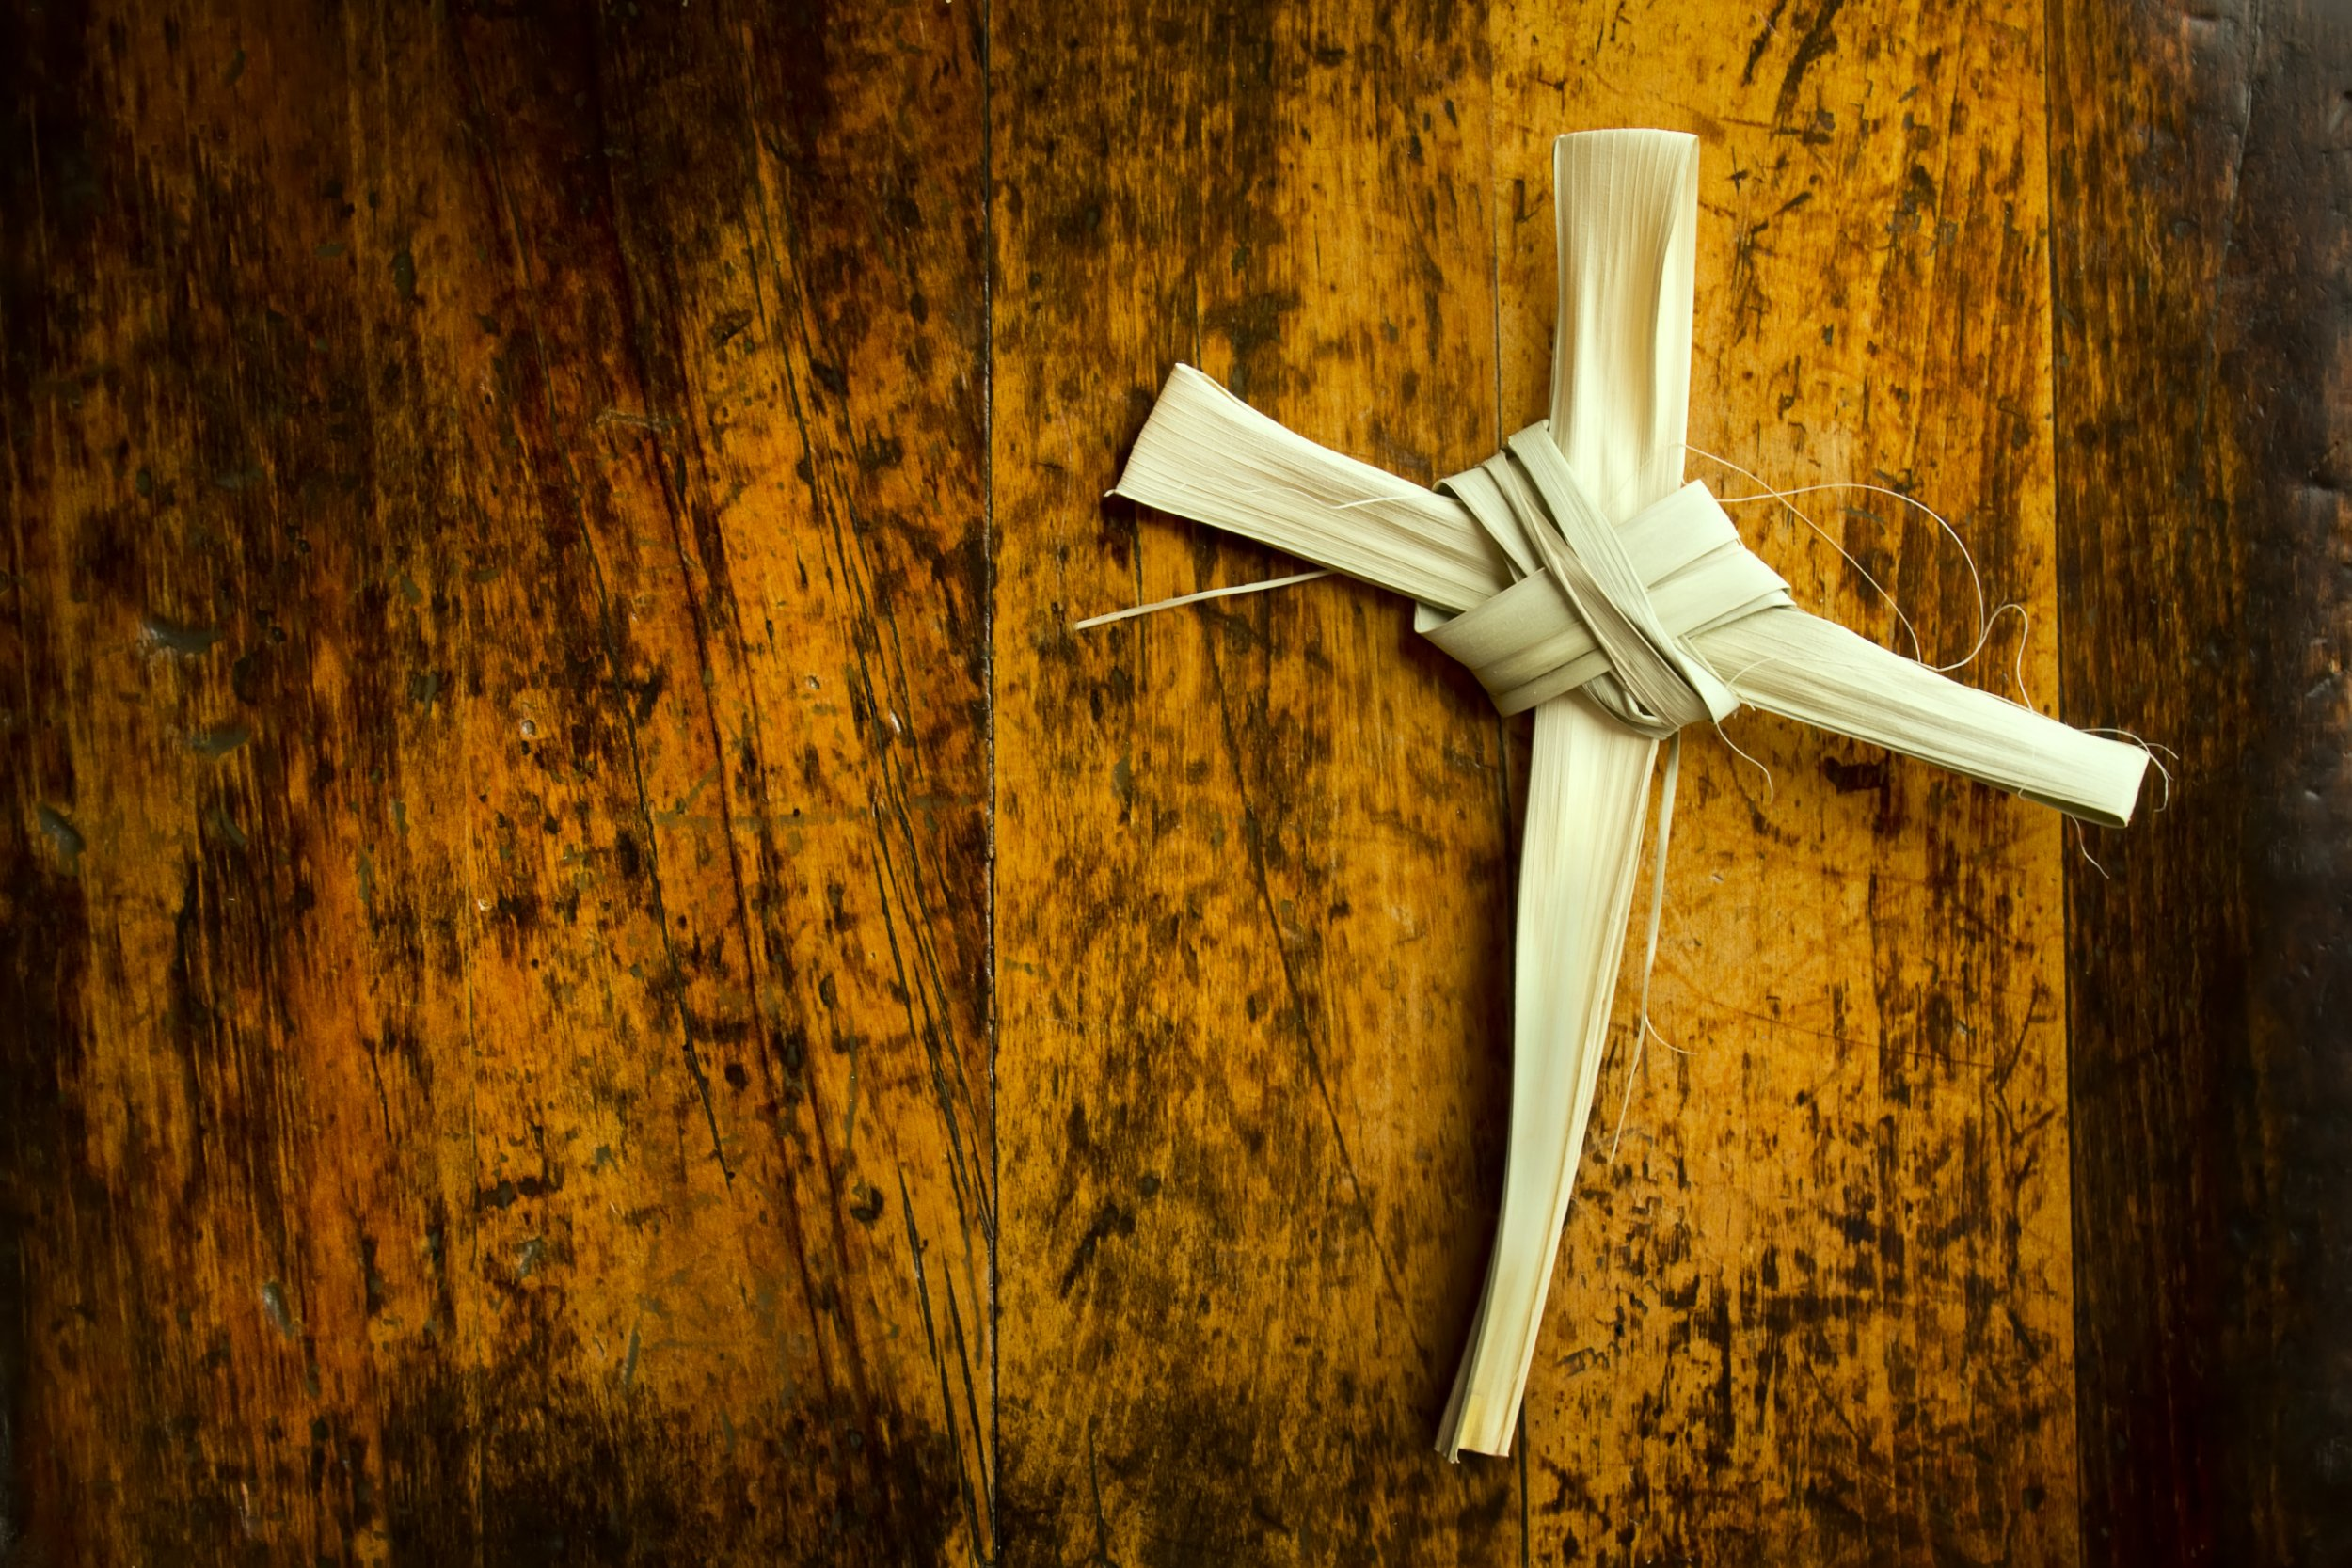 This Palm Branch was folded into a Cross shape and photographed on an antique wooden seat. It represents the Easter Season including Palm Sunday and Good Friday. Palm Branch Cross is my creation.; Shutterstock ID 149757194